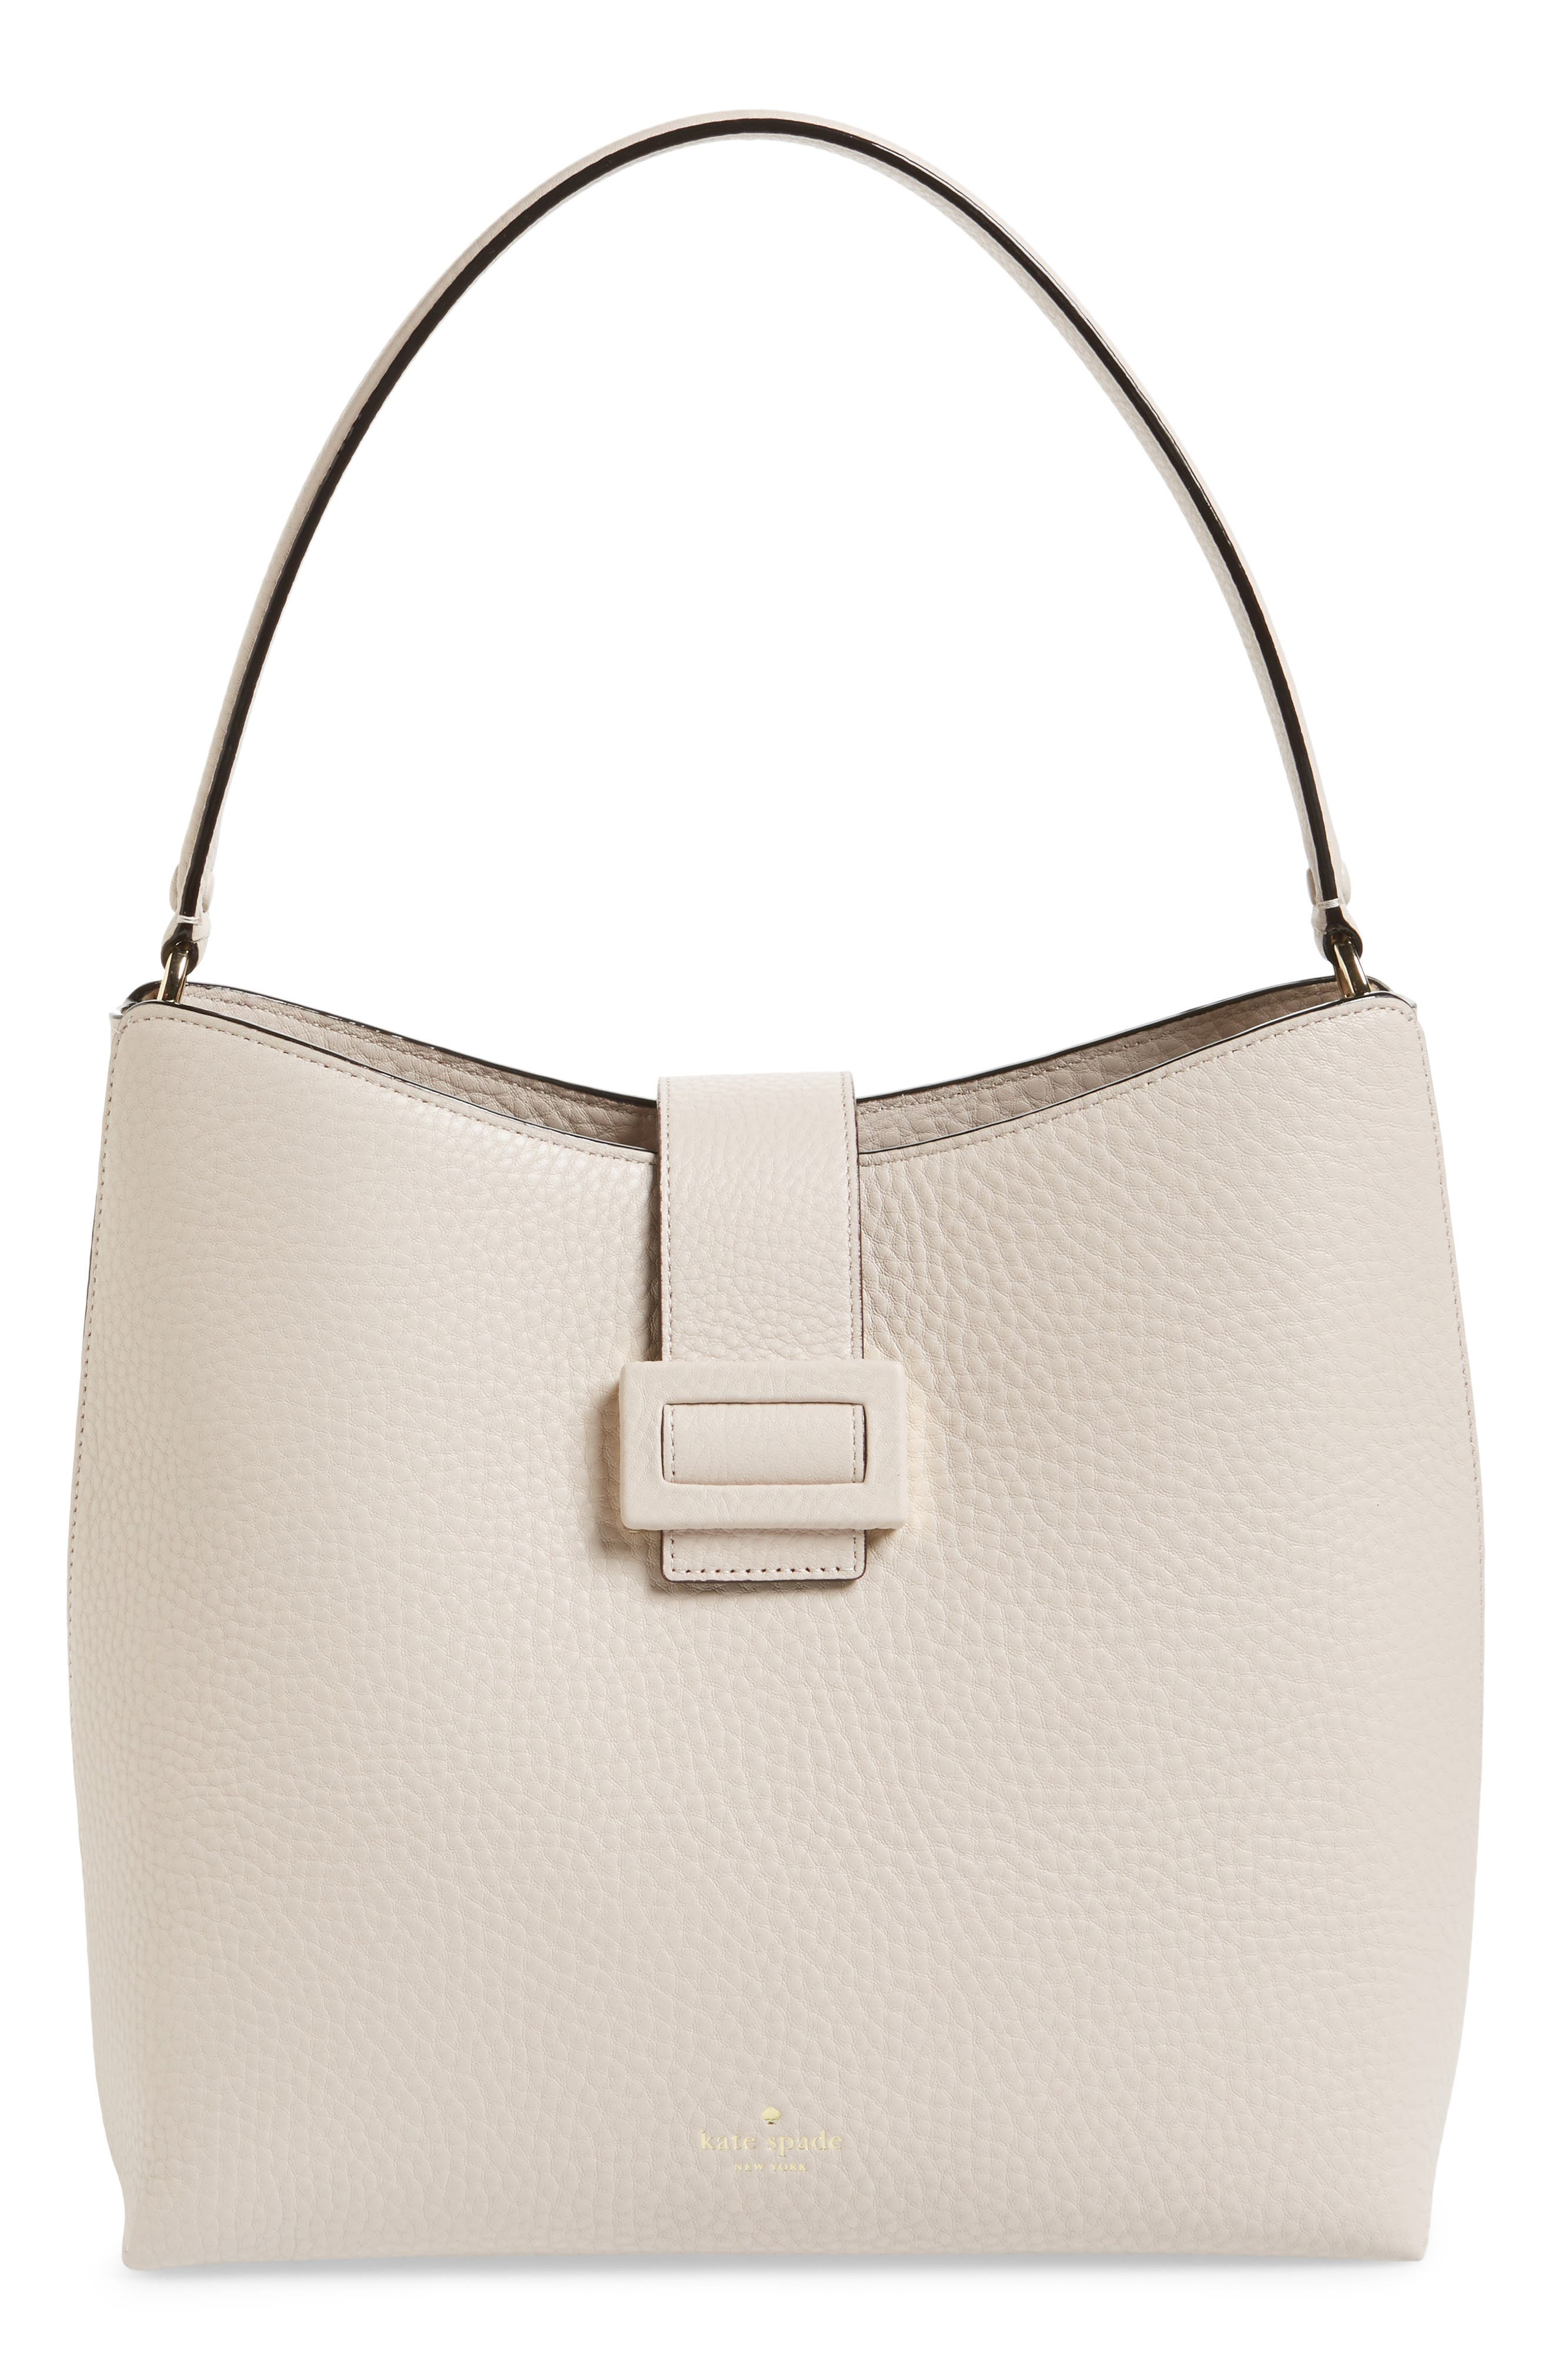 carlyle street – marea leather hobo,                         Main,                         color, Warm Marshmallow